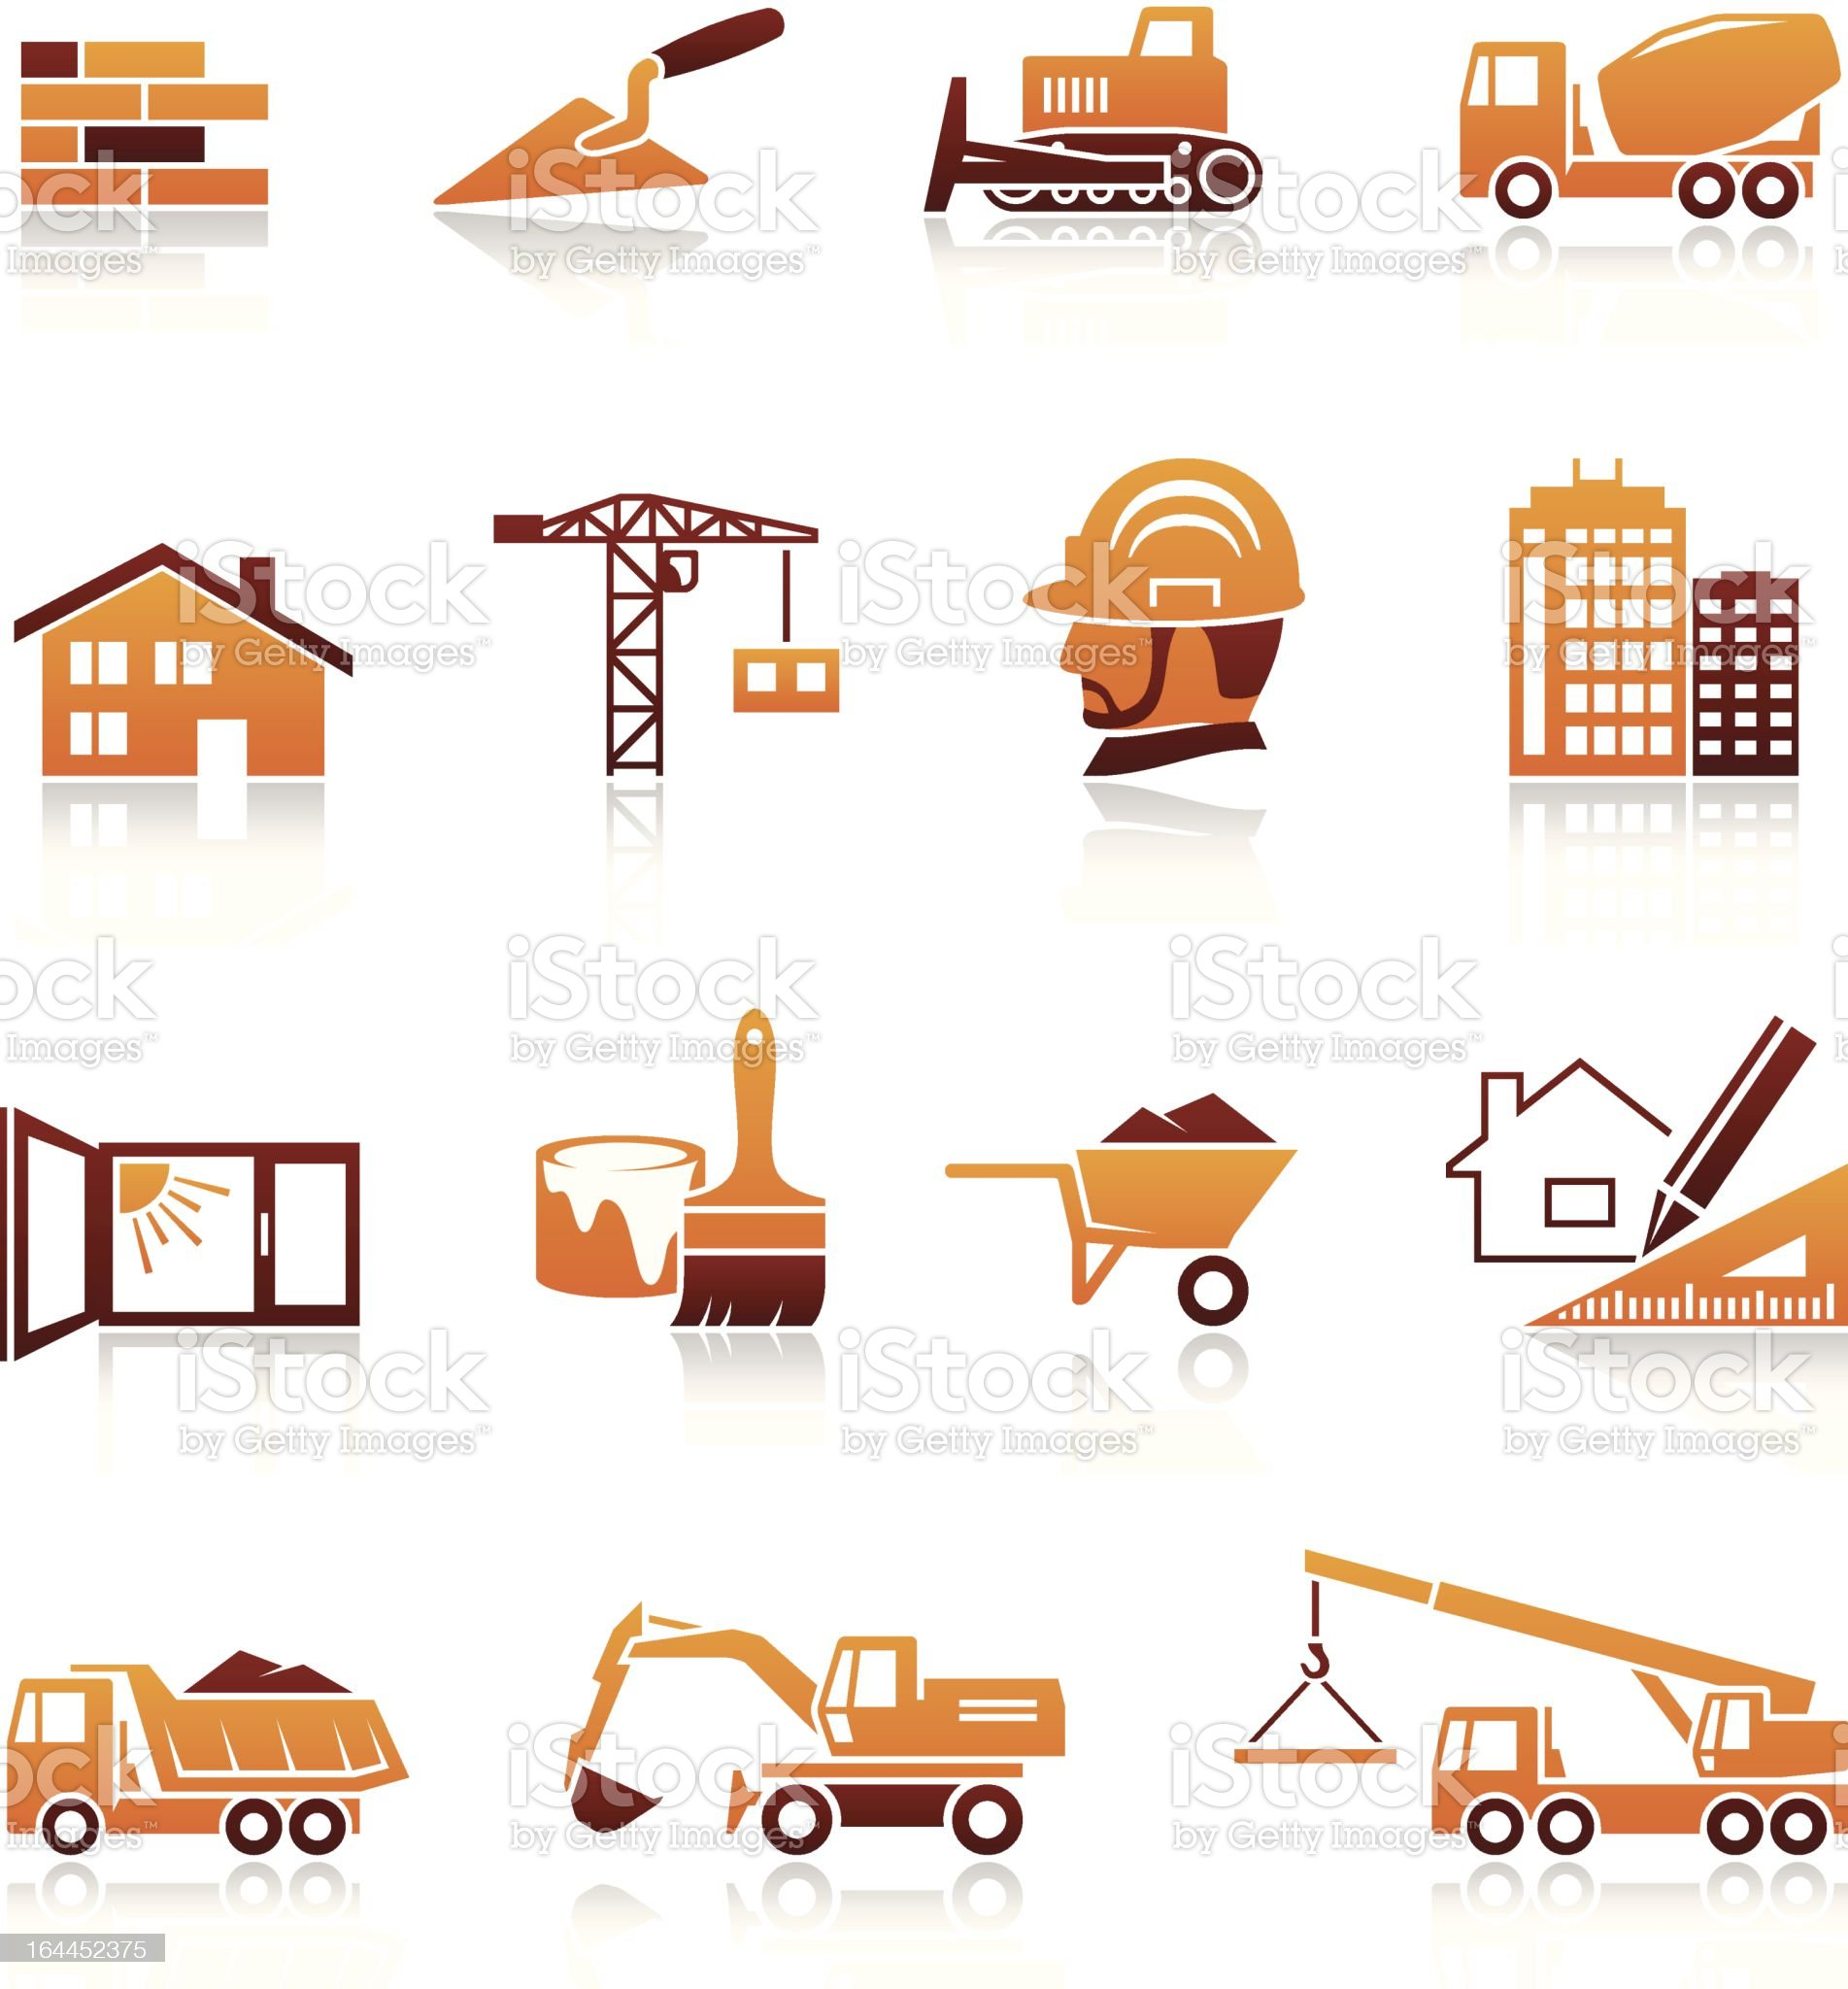 Construction and real estate icons royalty-free stock vector art